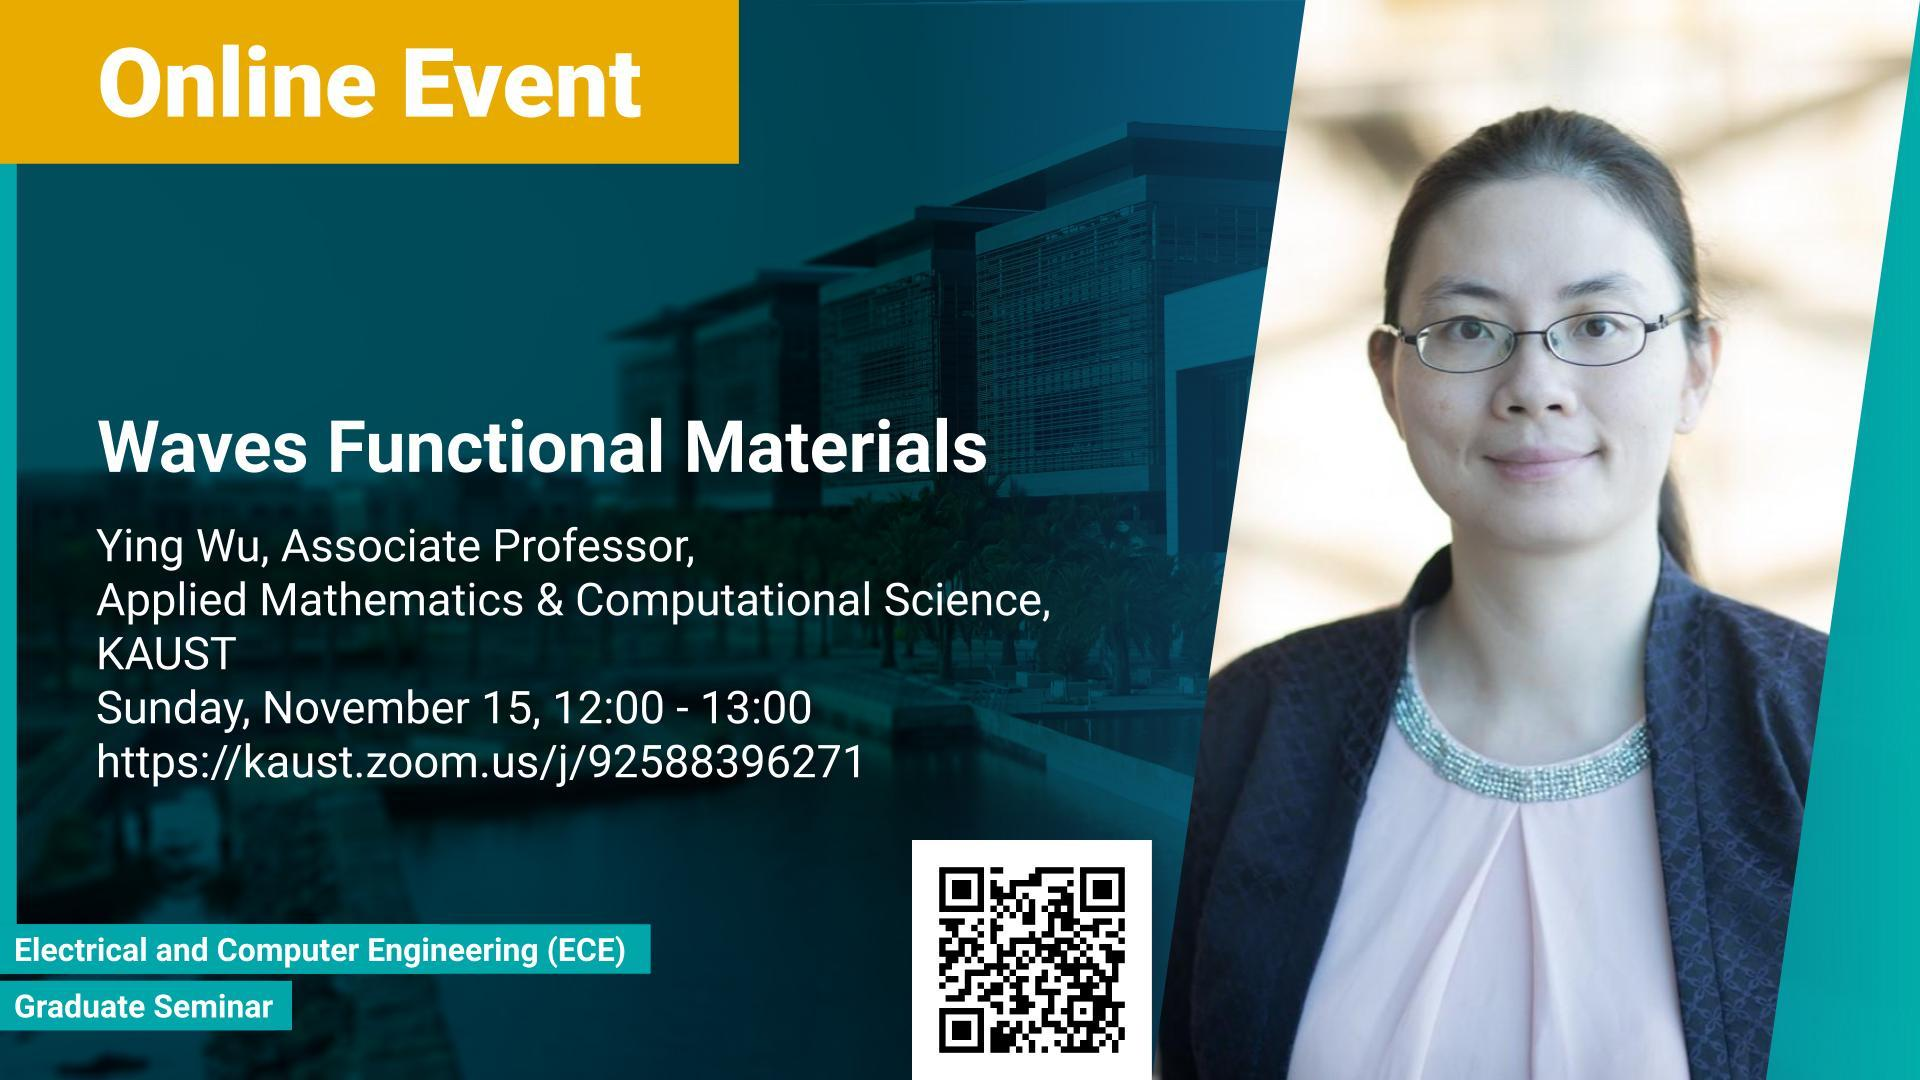 KAUST CEMSE ECE Graduate Seminar Ying Wu Wave Functional Materials